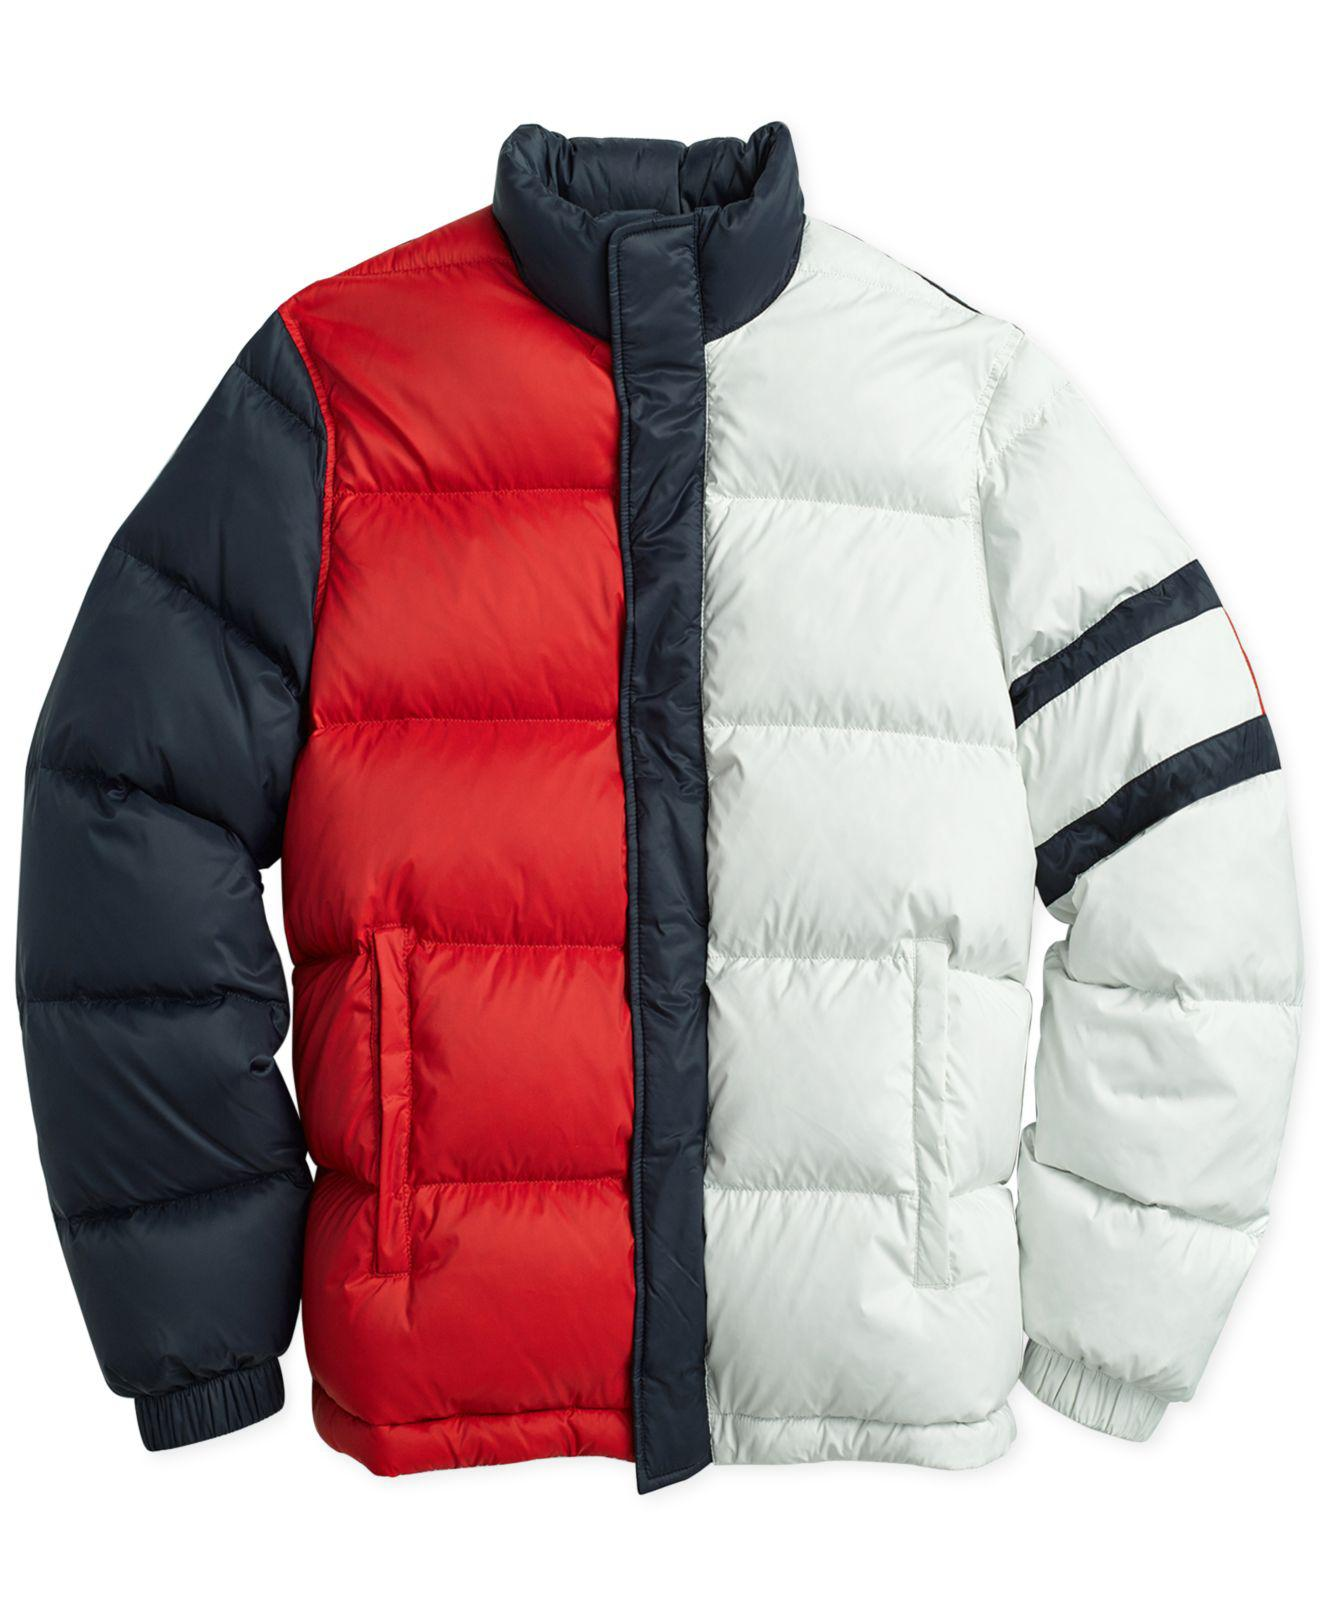 329c9107 Tommy Hilfiger Elite Puffer Jacket With Magnetic Zipper in Blue for ...